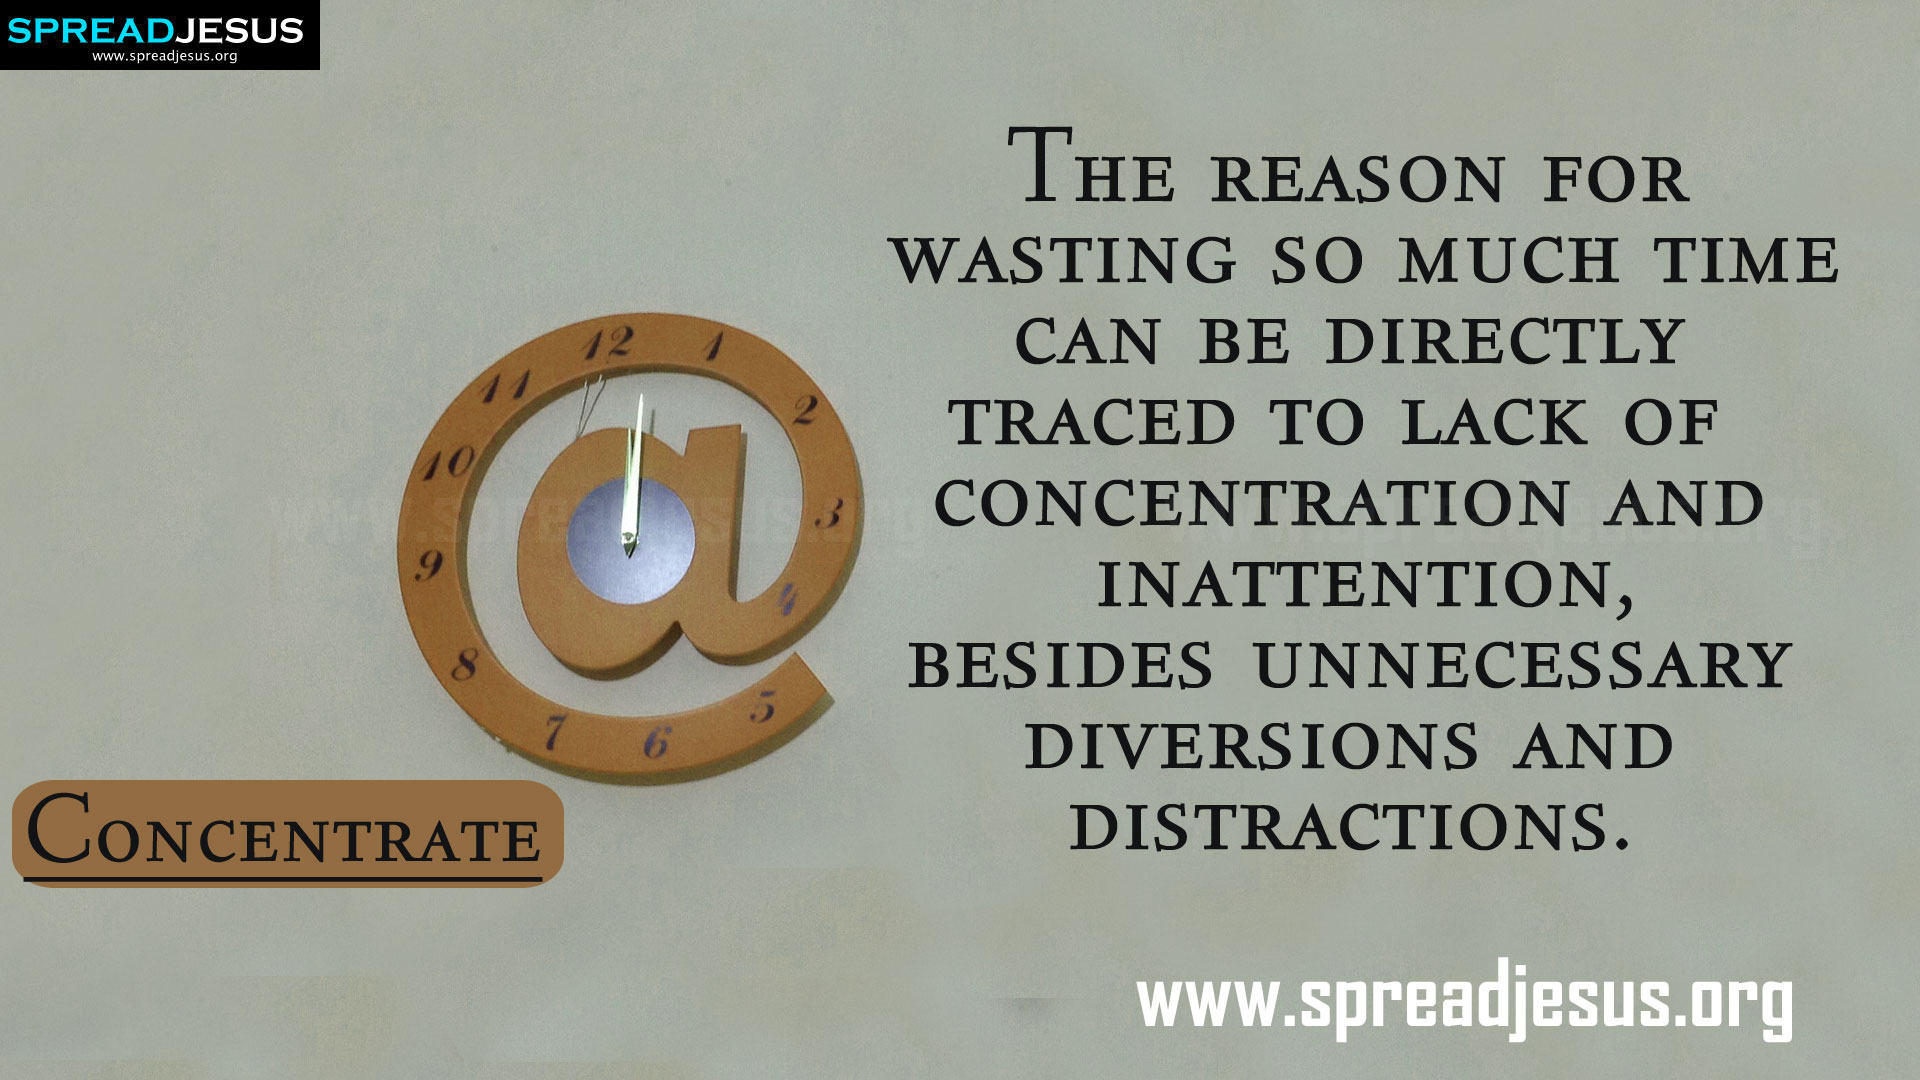 TIME MANAGEMENT QUOTES HD-WALLPAPERS FREE DOWNLOAD Concentrate - The reason for wasting so much time can be directly traced to lack of concentration